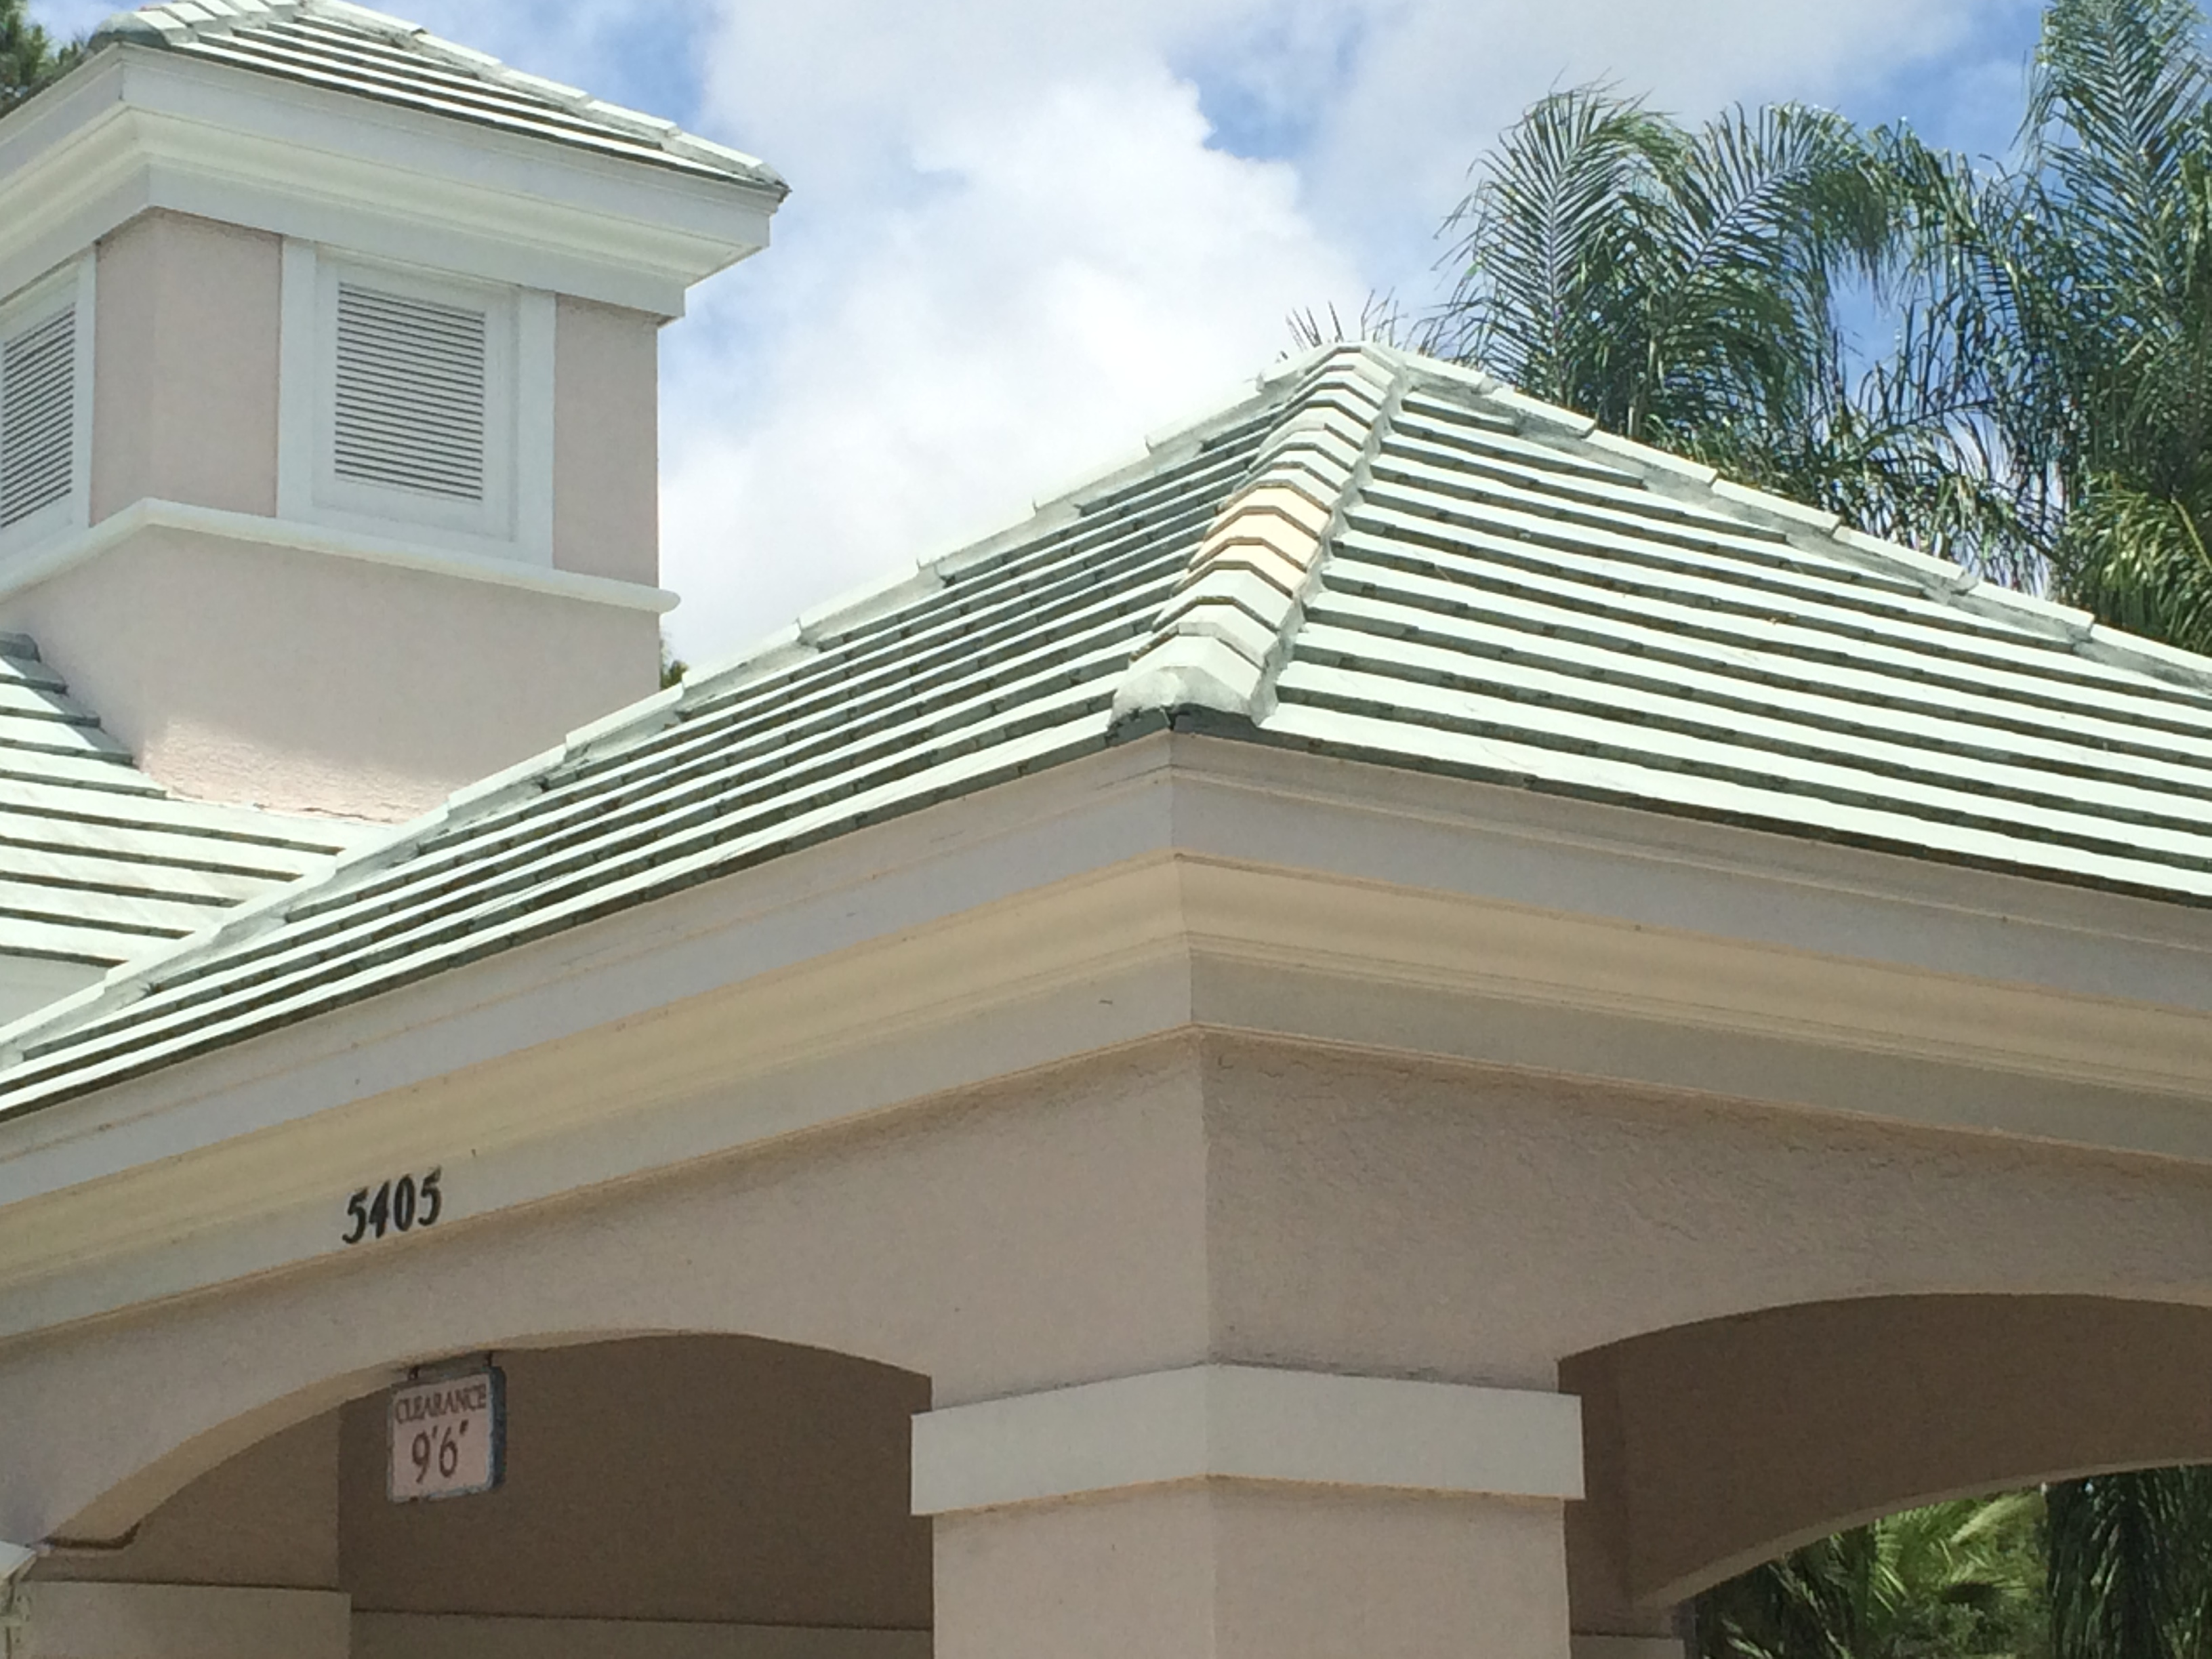 Florida State Roofing Construction Proudly Provides These Serviceore Aluminum Asphalt Shingles Carpentry Cedar Shakes